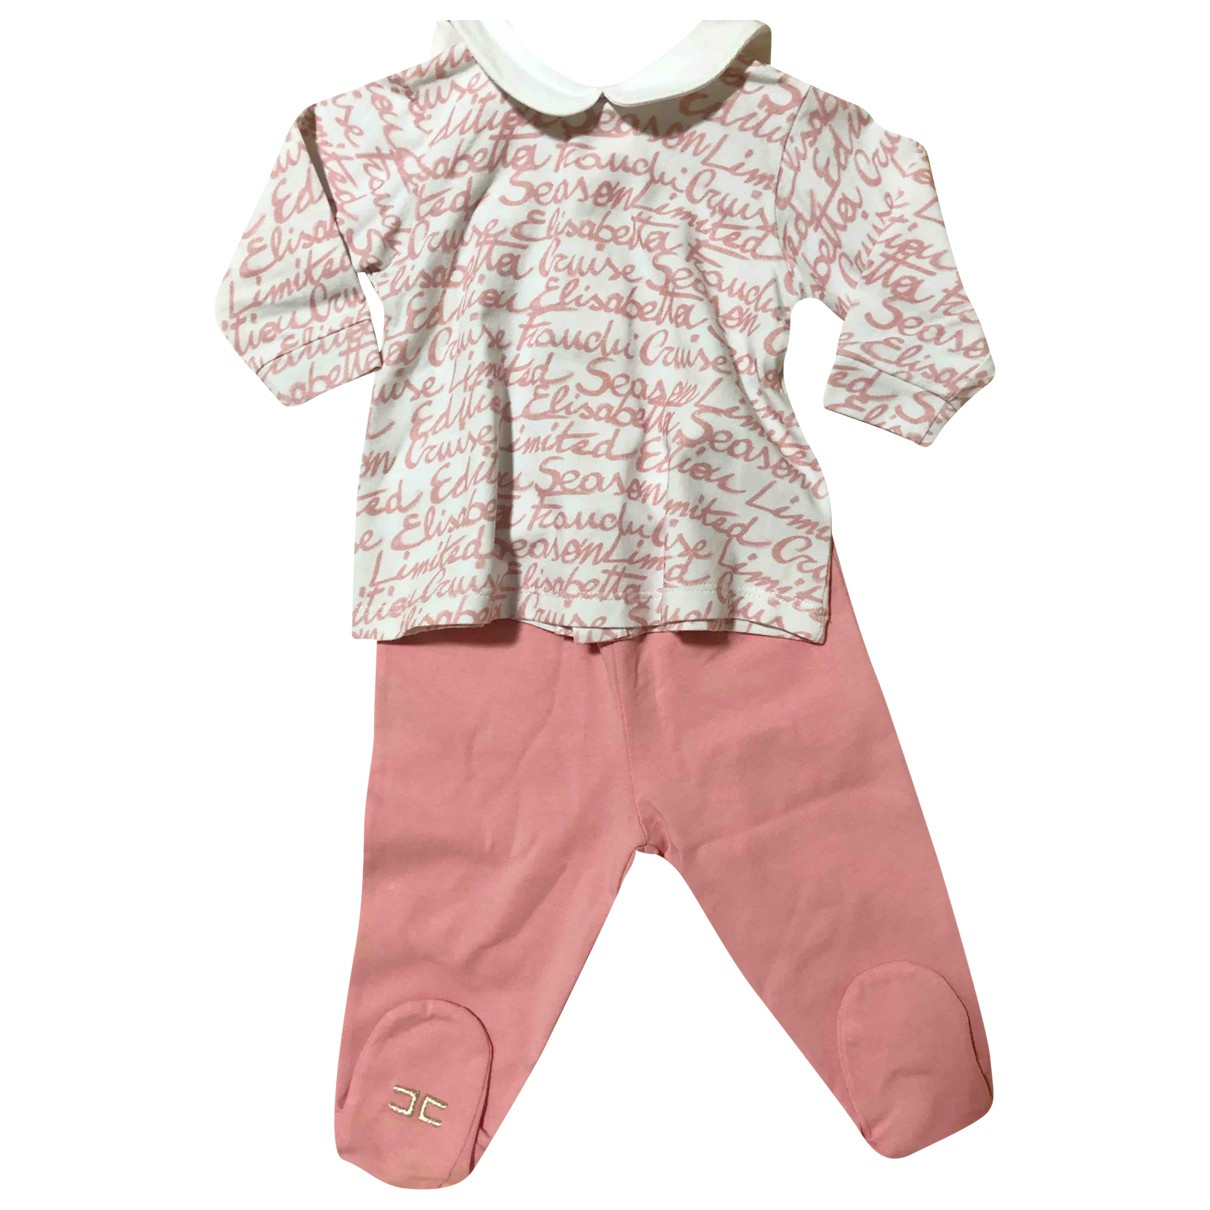 Elisabetta Franchi N Pink Cotton Outfits for Kids 3 months - up to 60cm FR